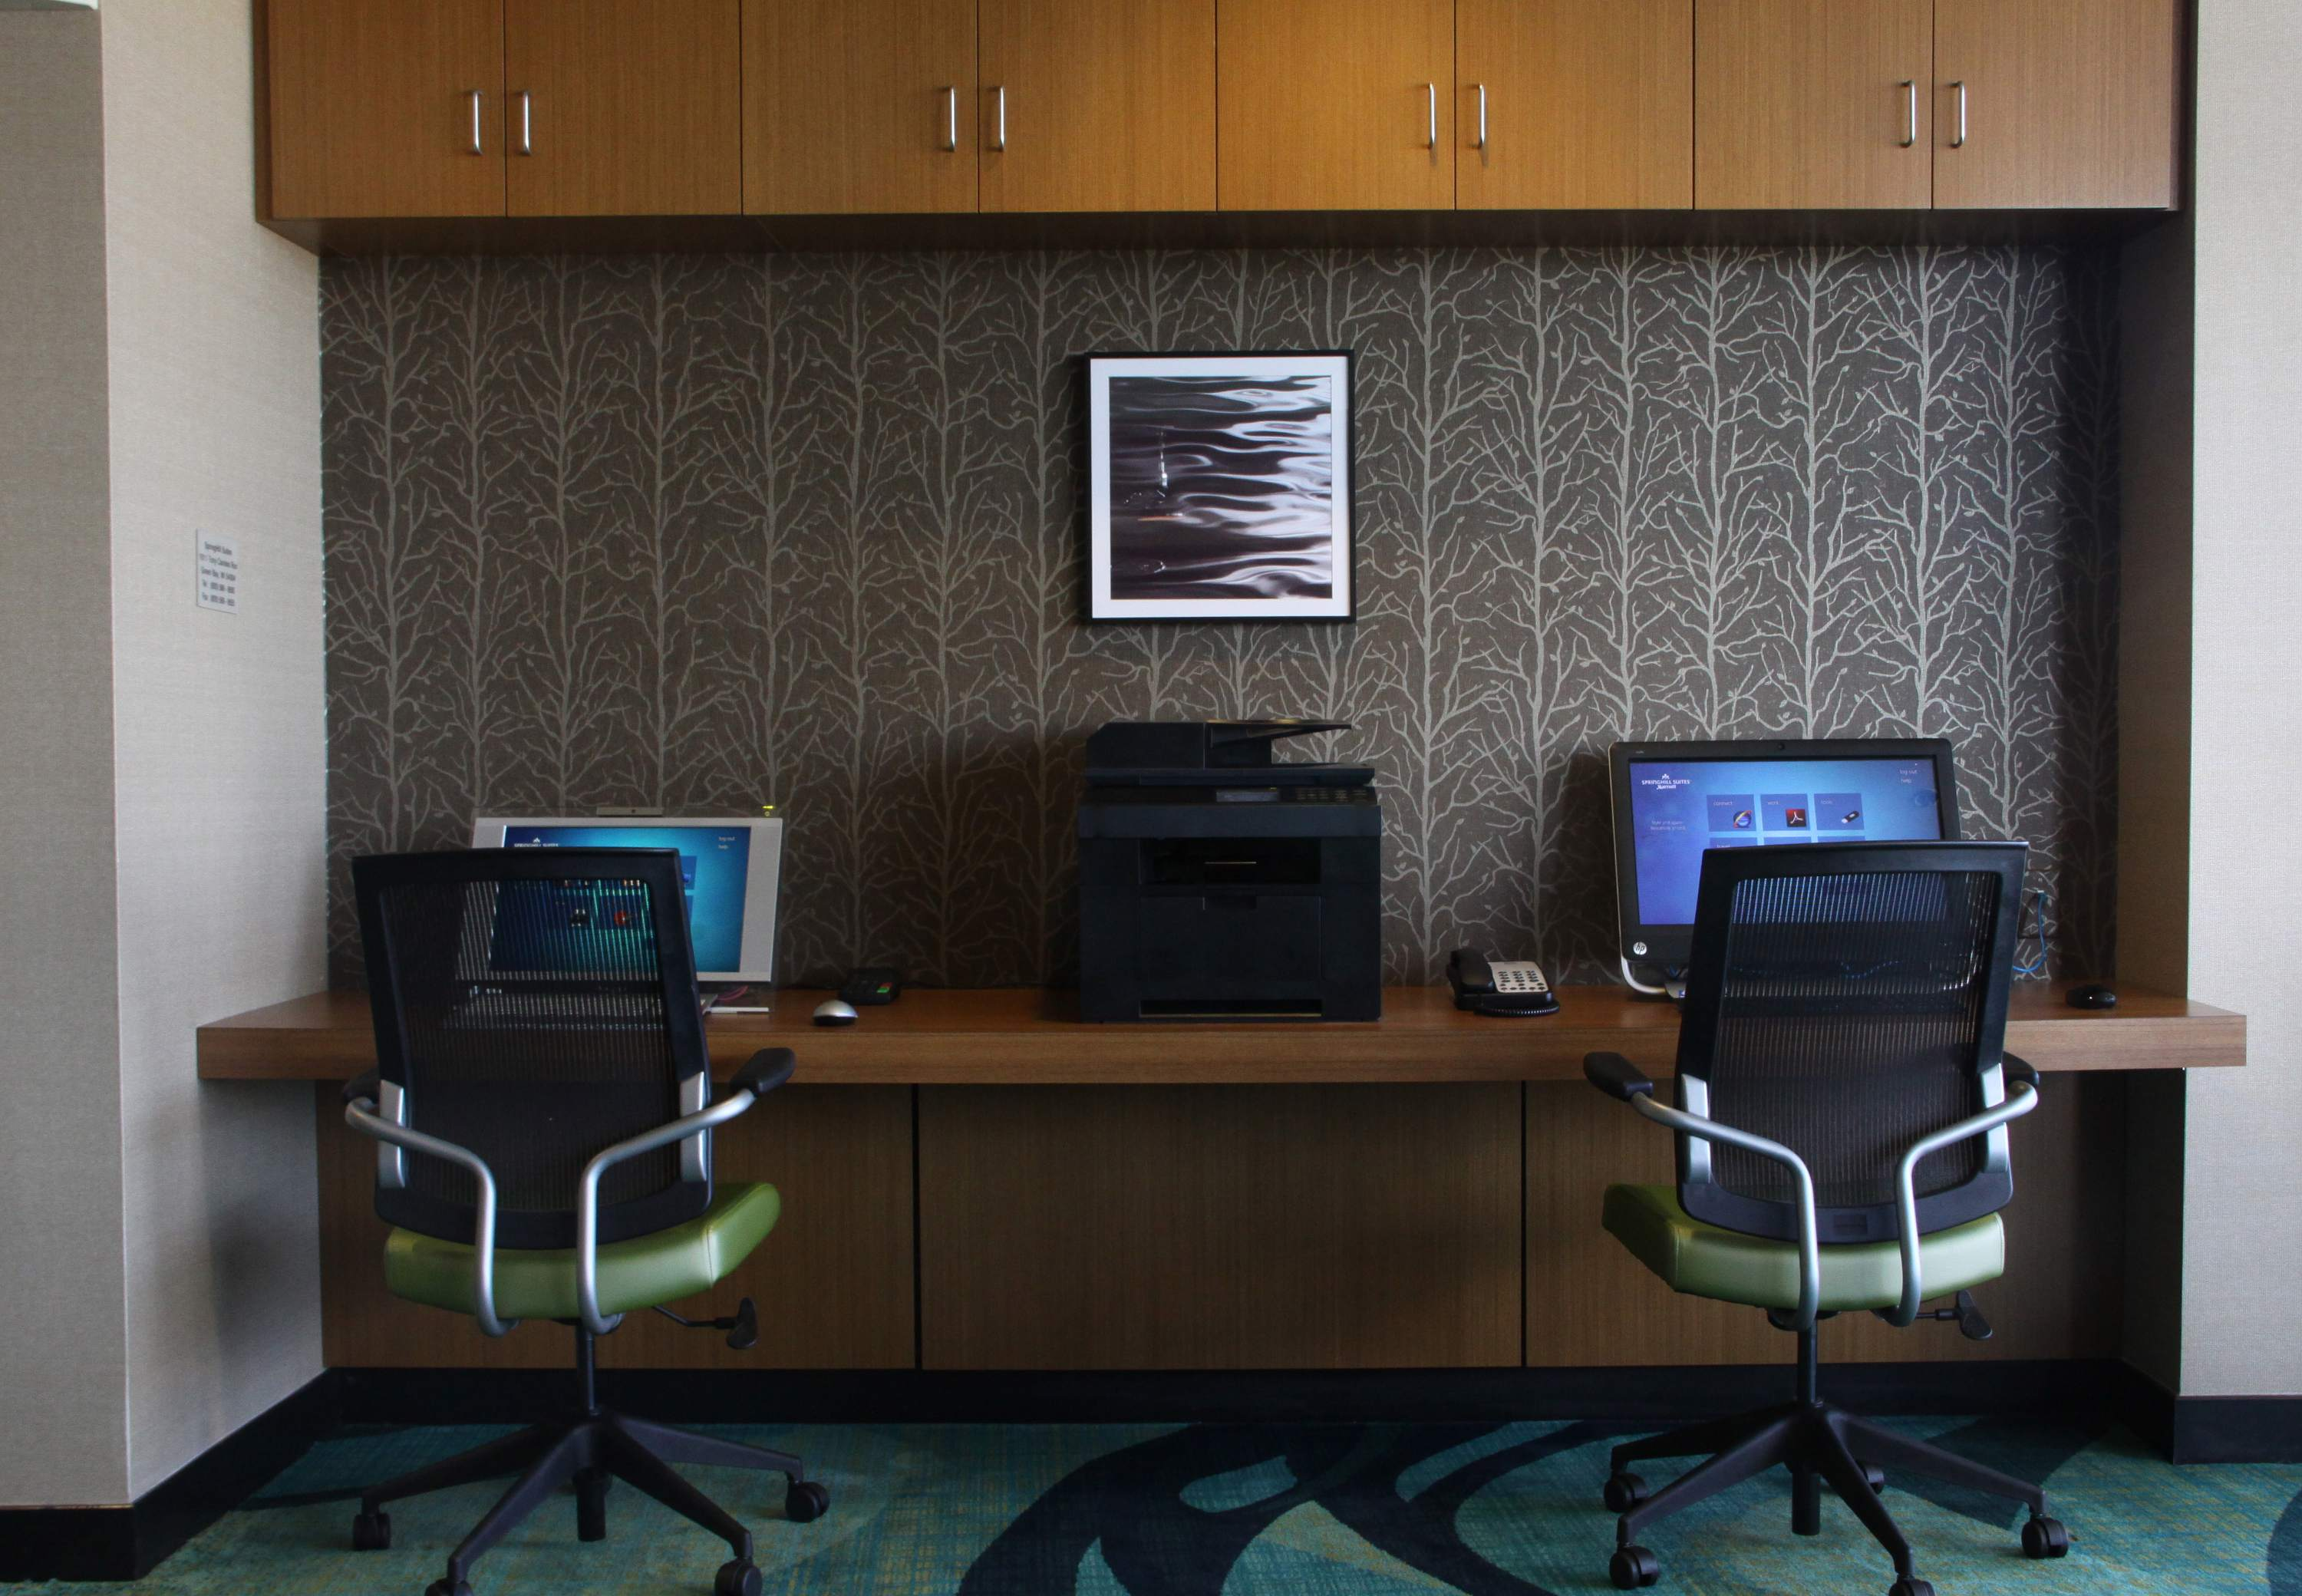 SpringHill Suites by Marriott Green Bay image 10